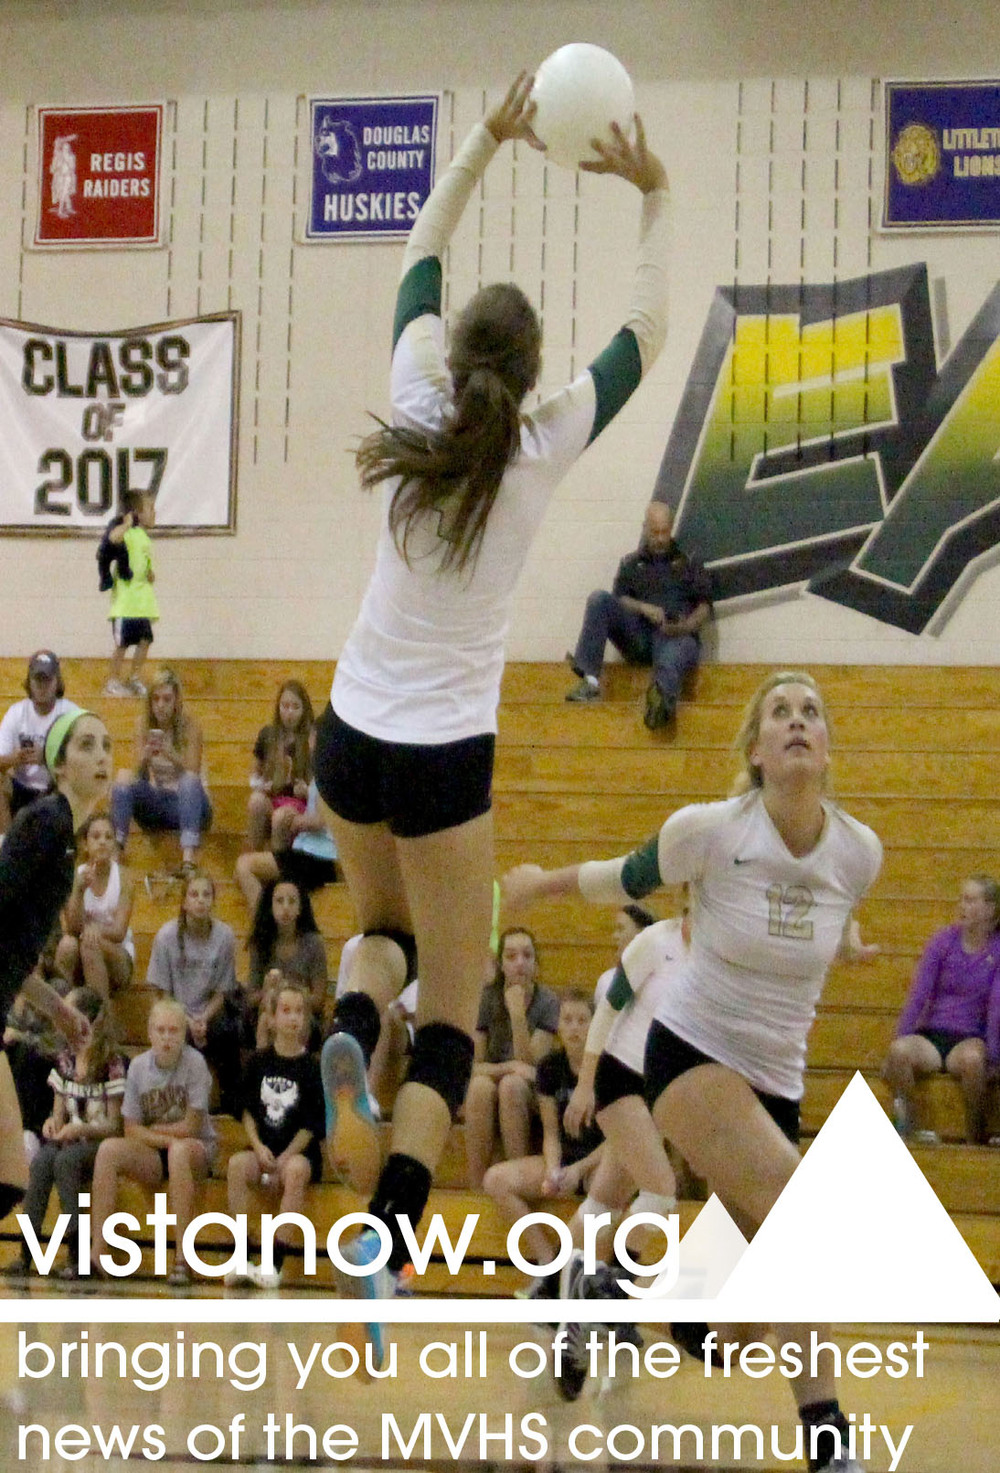 This advertisement used a photo from the women's volleyball gallery senior staffer Kenzie Winslow and I posted.